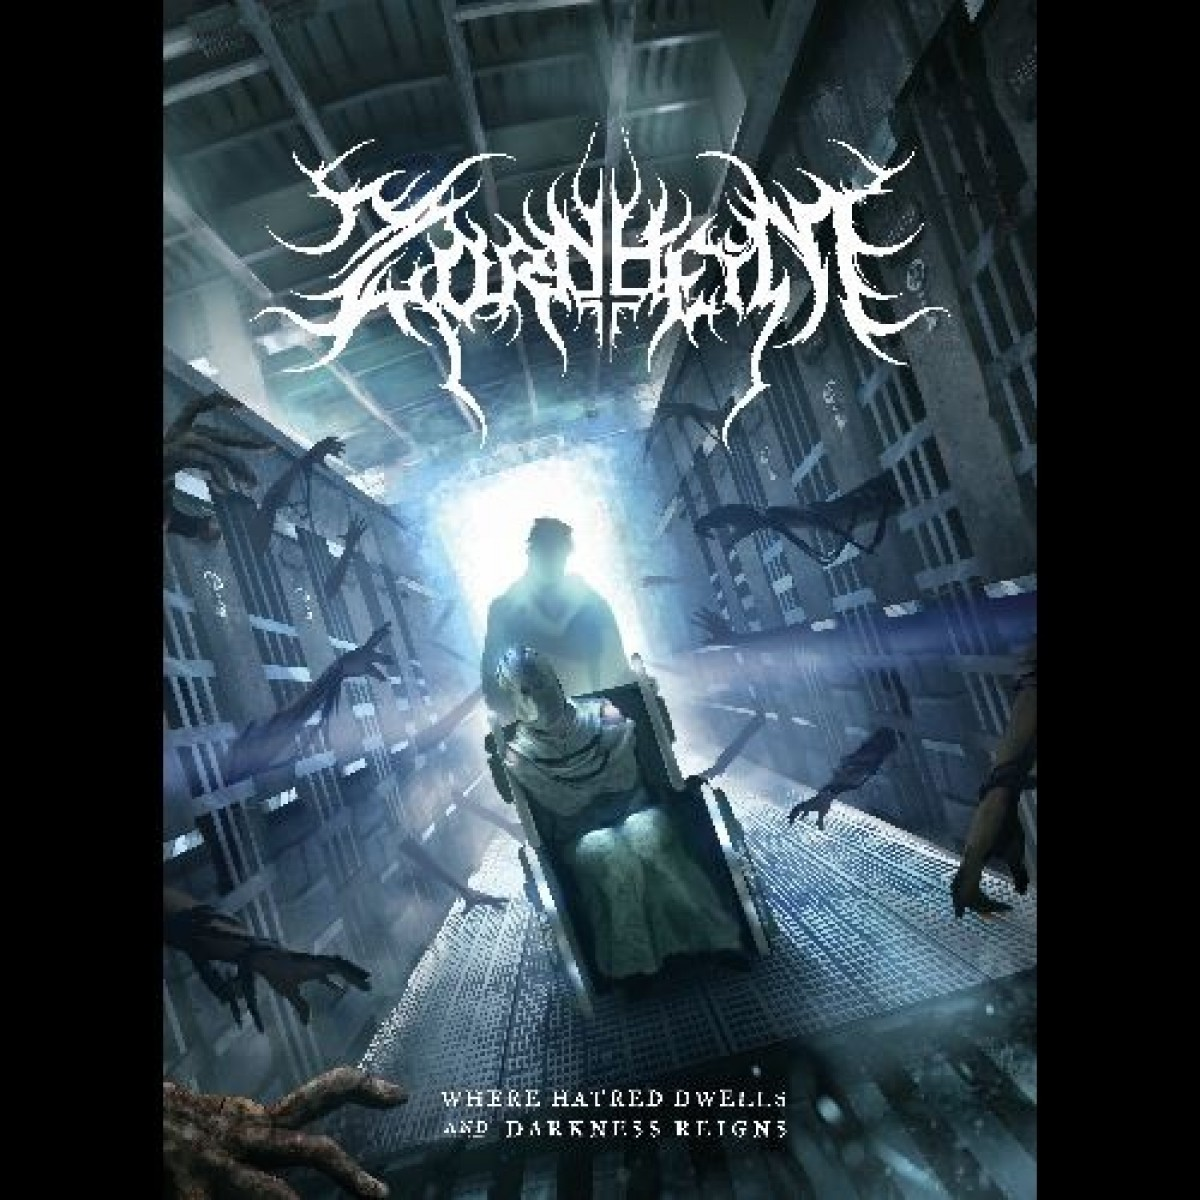 Zornheim - Where Hatred Dwells and Darkness Reigns  (A5 Digipak)